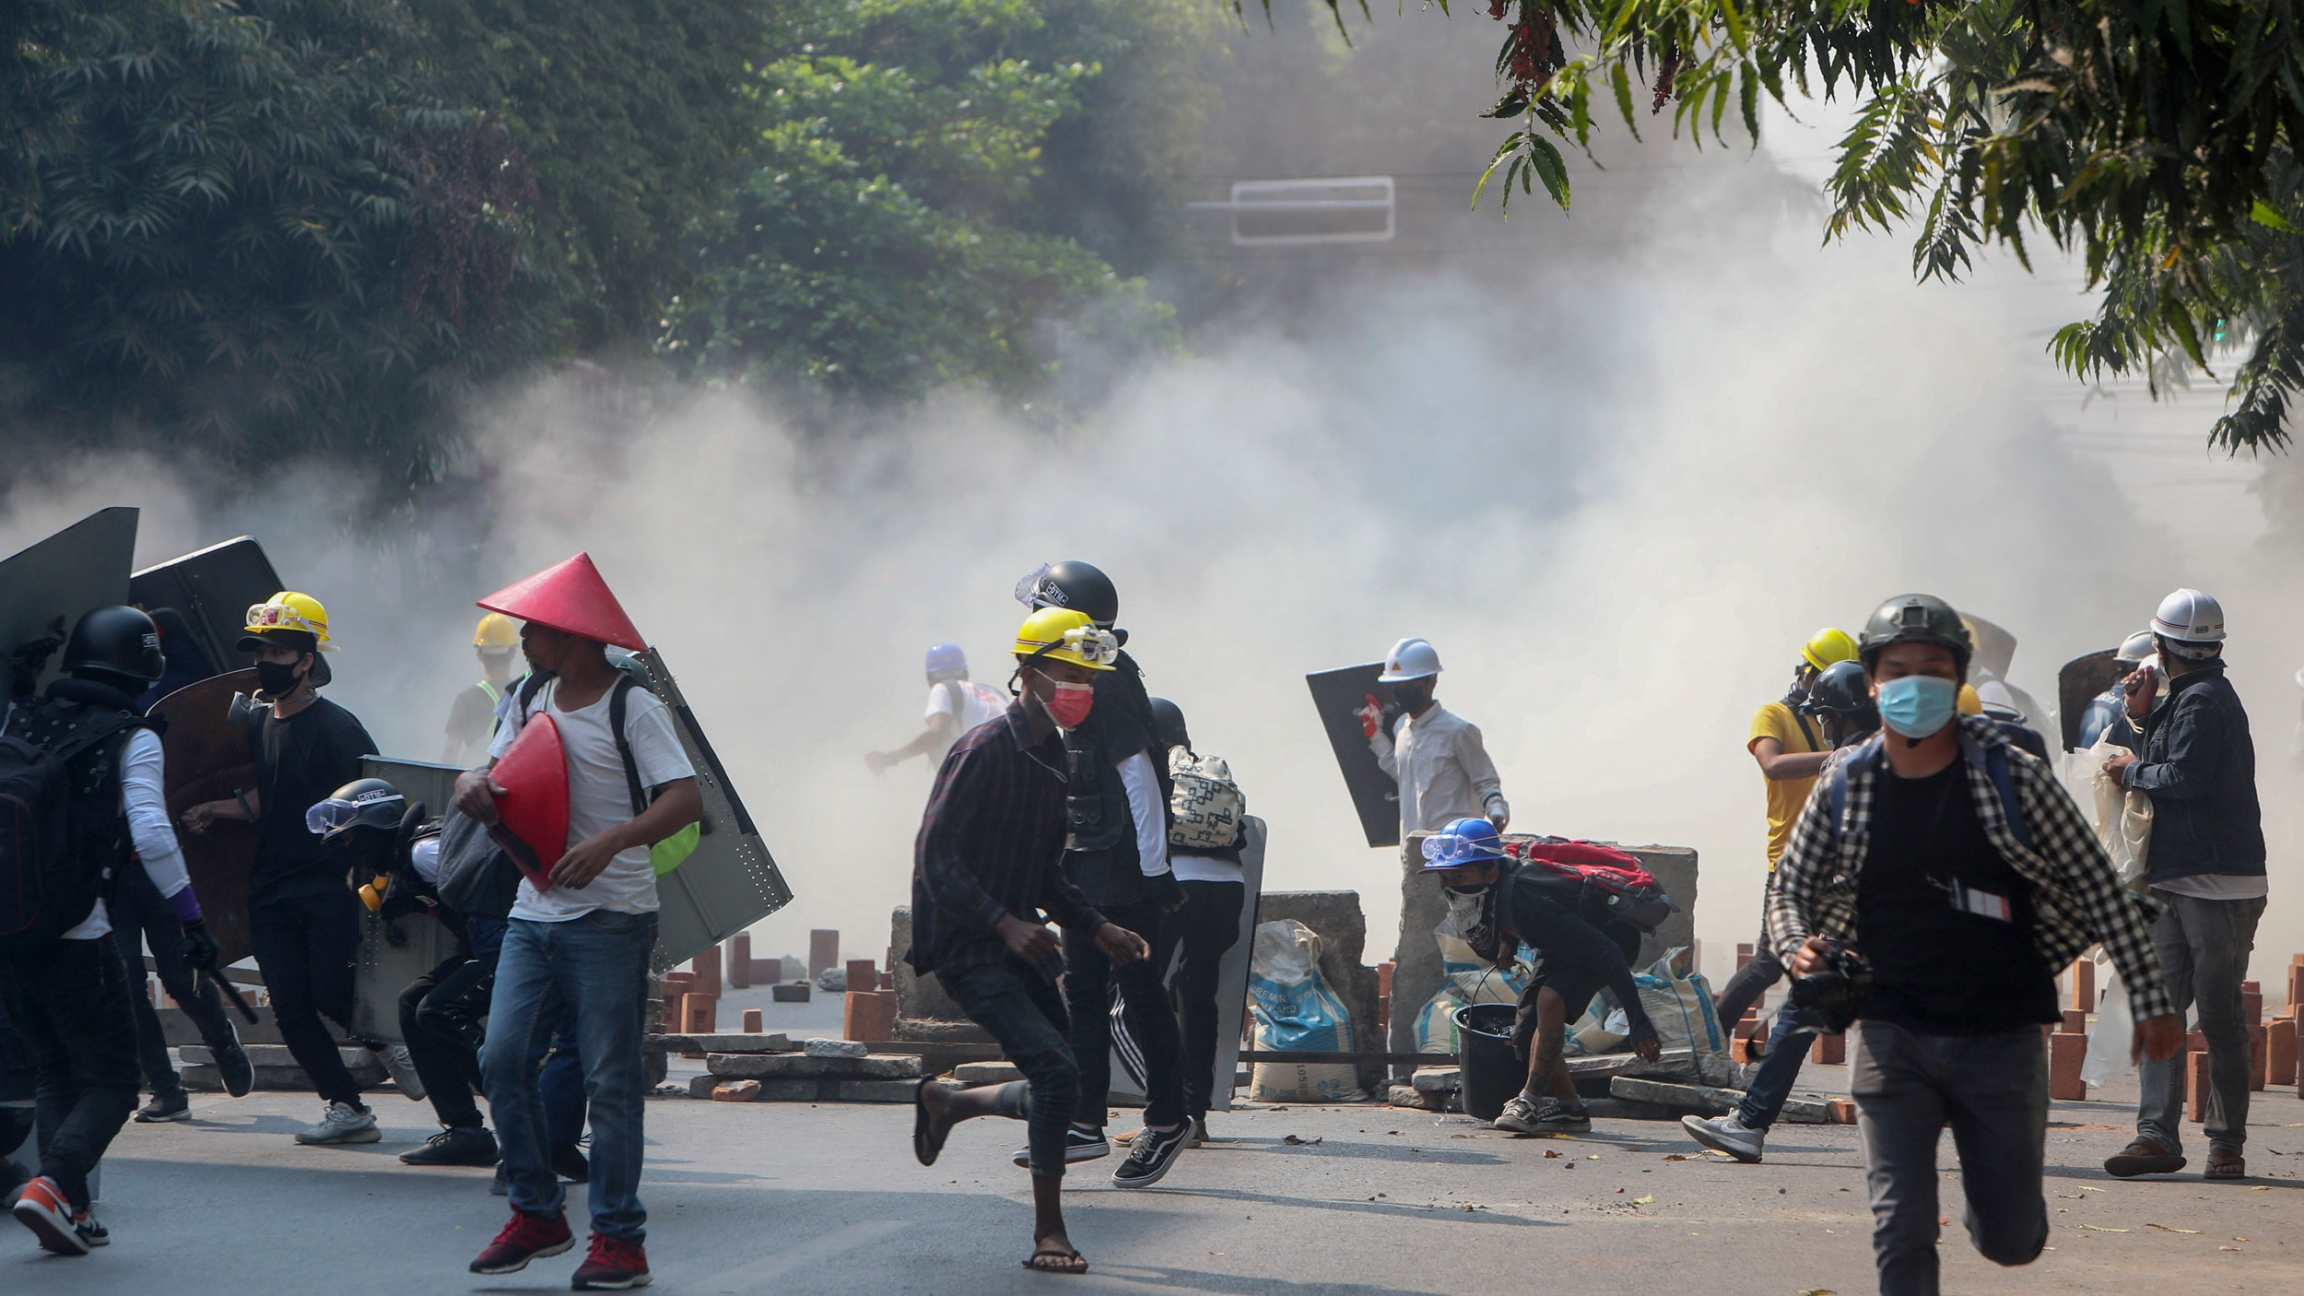 A large group of protesters are shown running from a cloud of tear gas in the foreground with several people wearing construction hard hats.